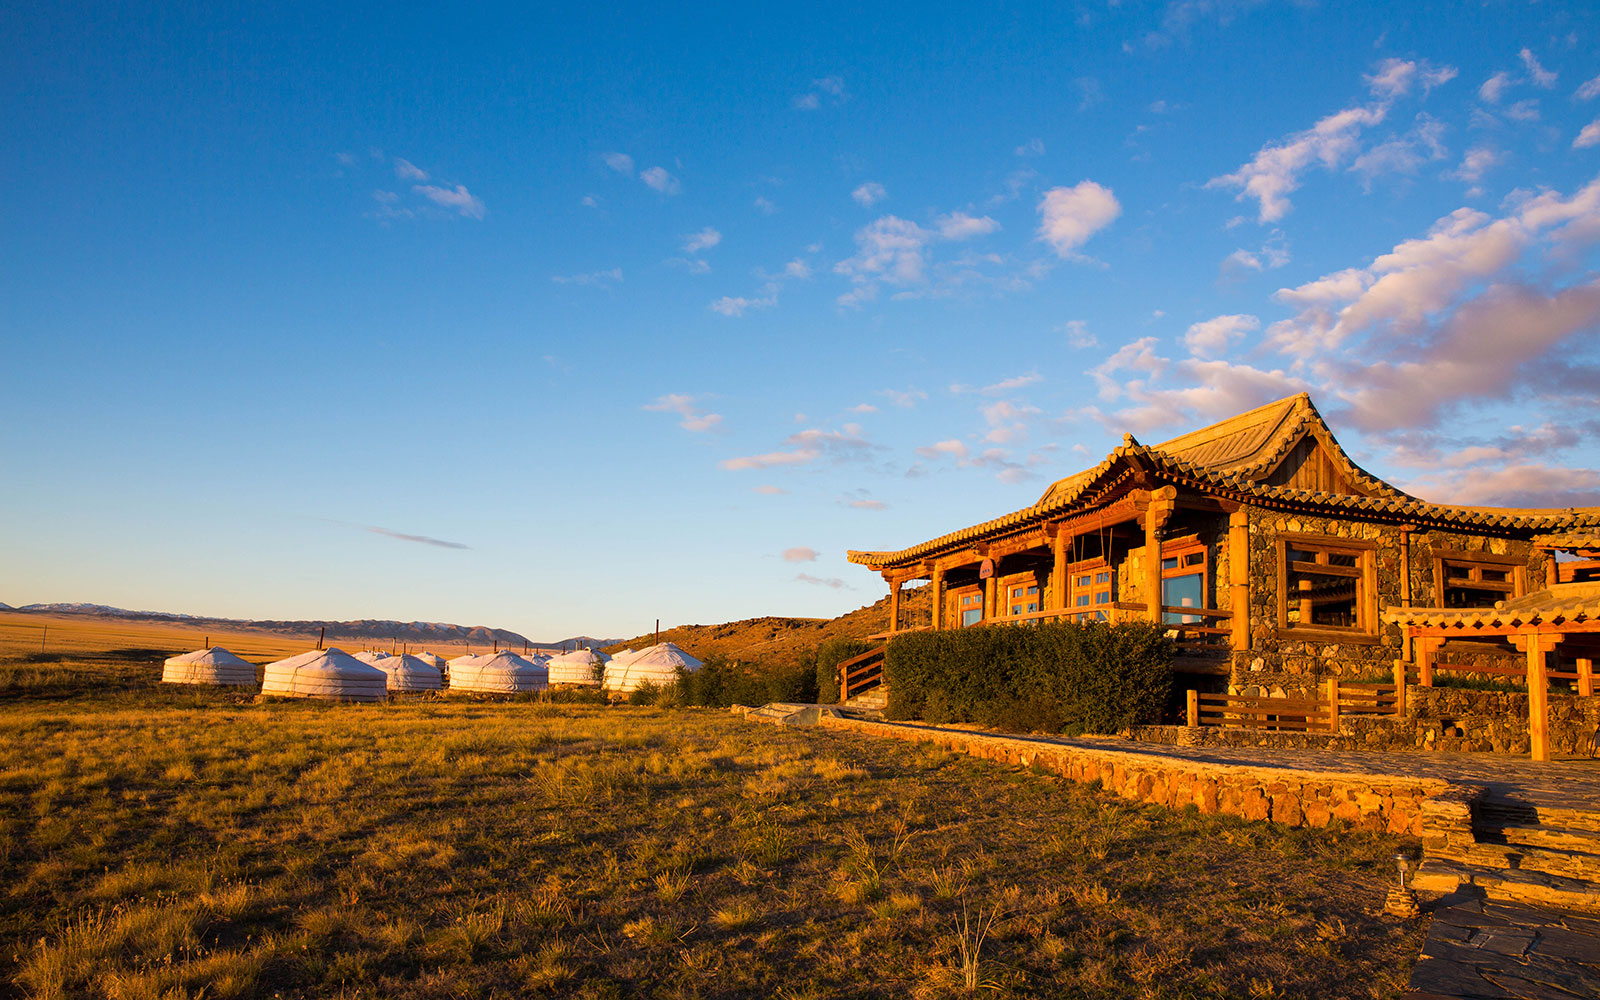 Three Camel Lodge in Mongolia